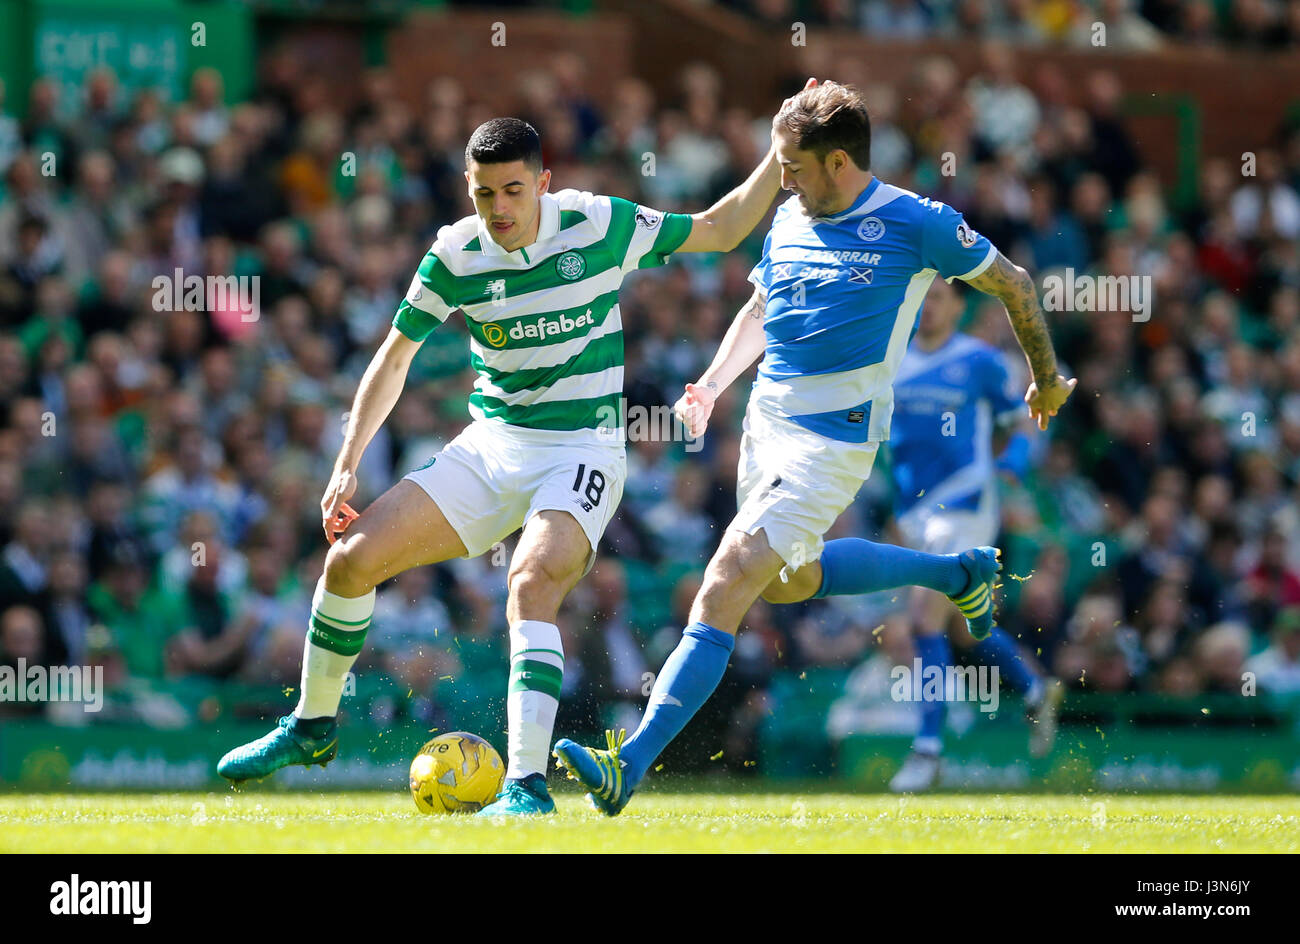 St Johnstone's Paul Paton (right) and Celtic's Tom Rogic battle for the ball during the Scottish Premiership - Stock Image